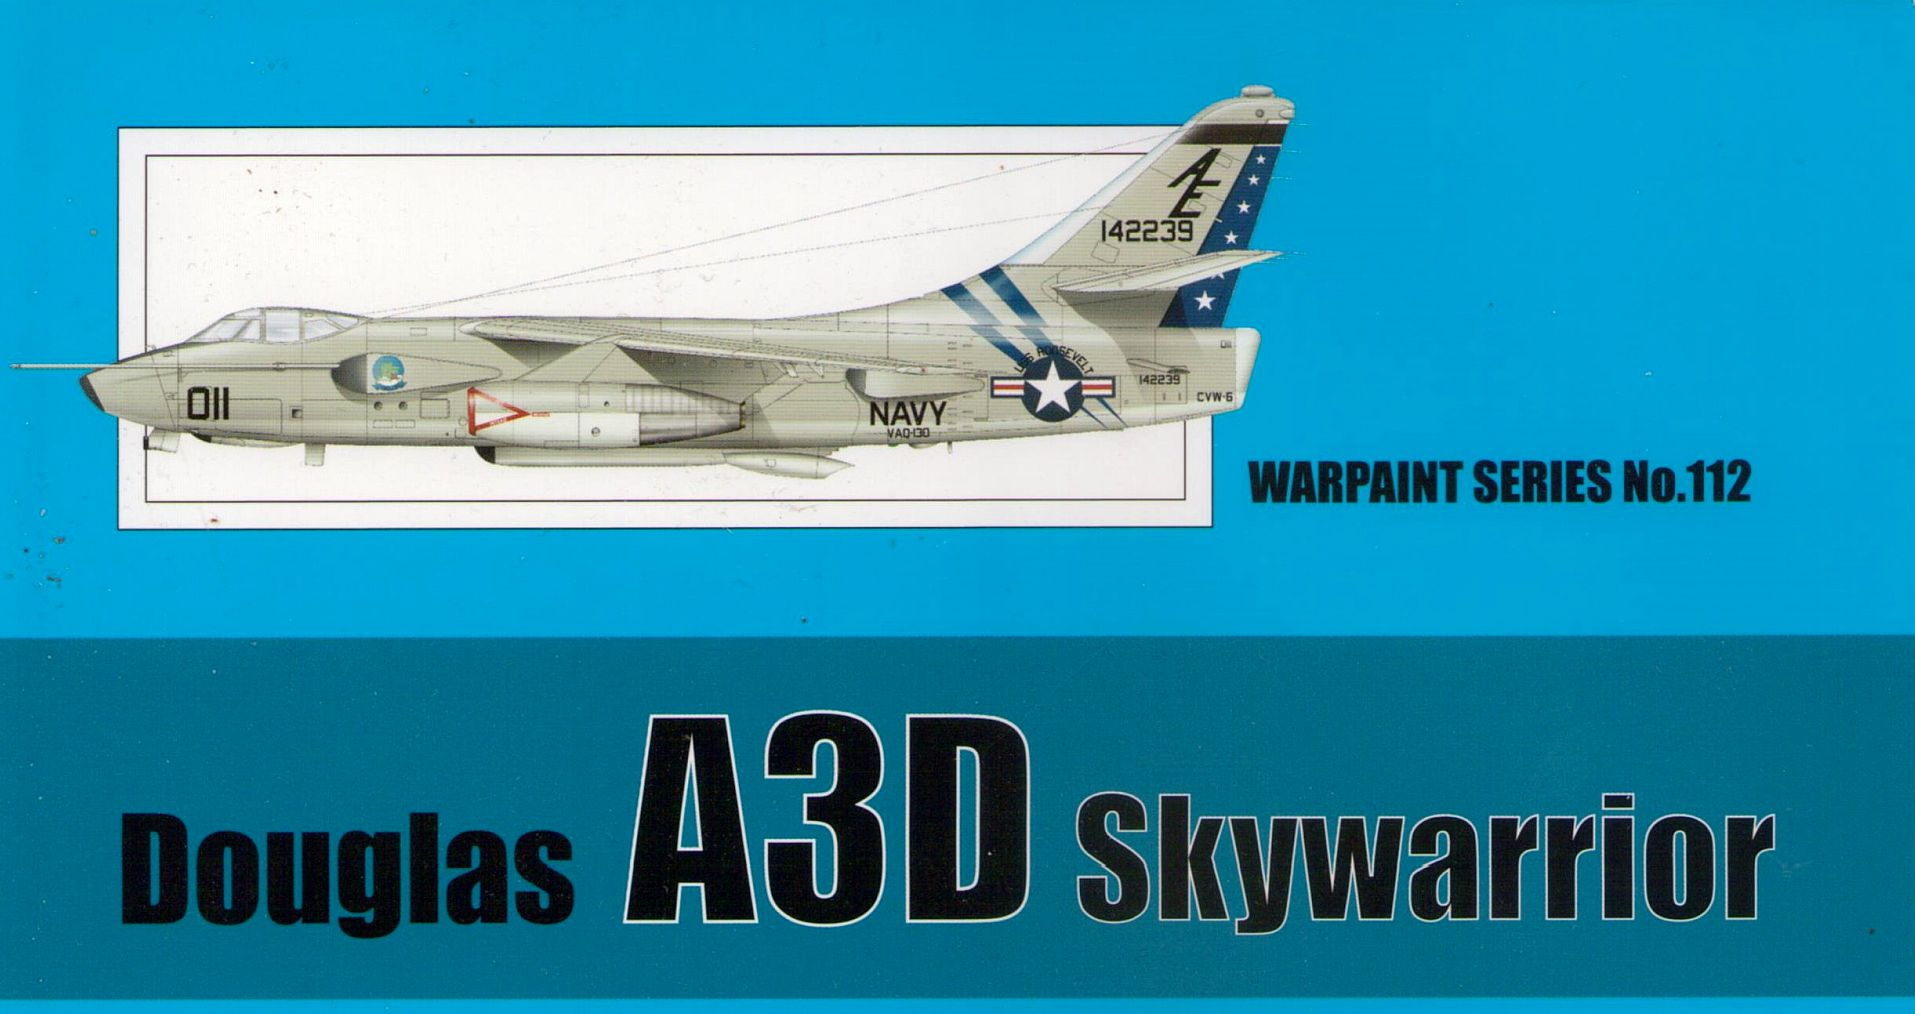 DOUGLAS A-3D SKYWARRIOR, WARPAINT NO. 112